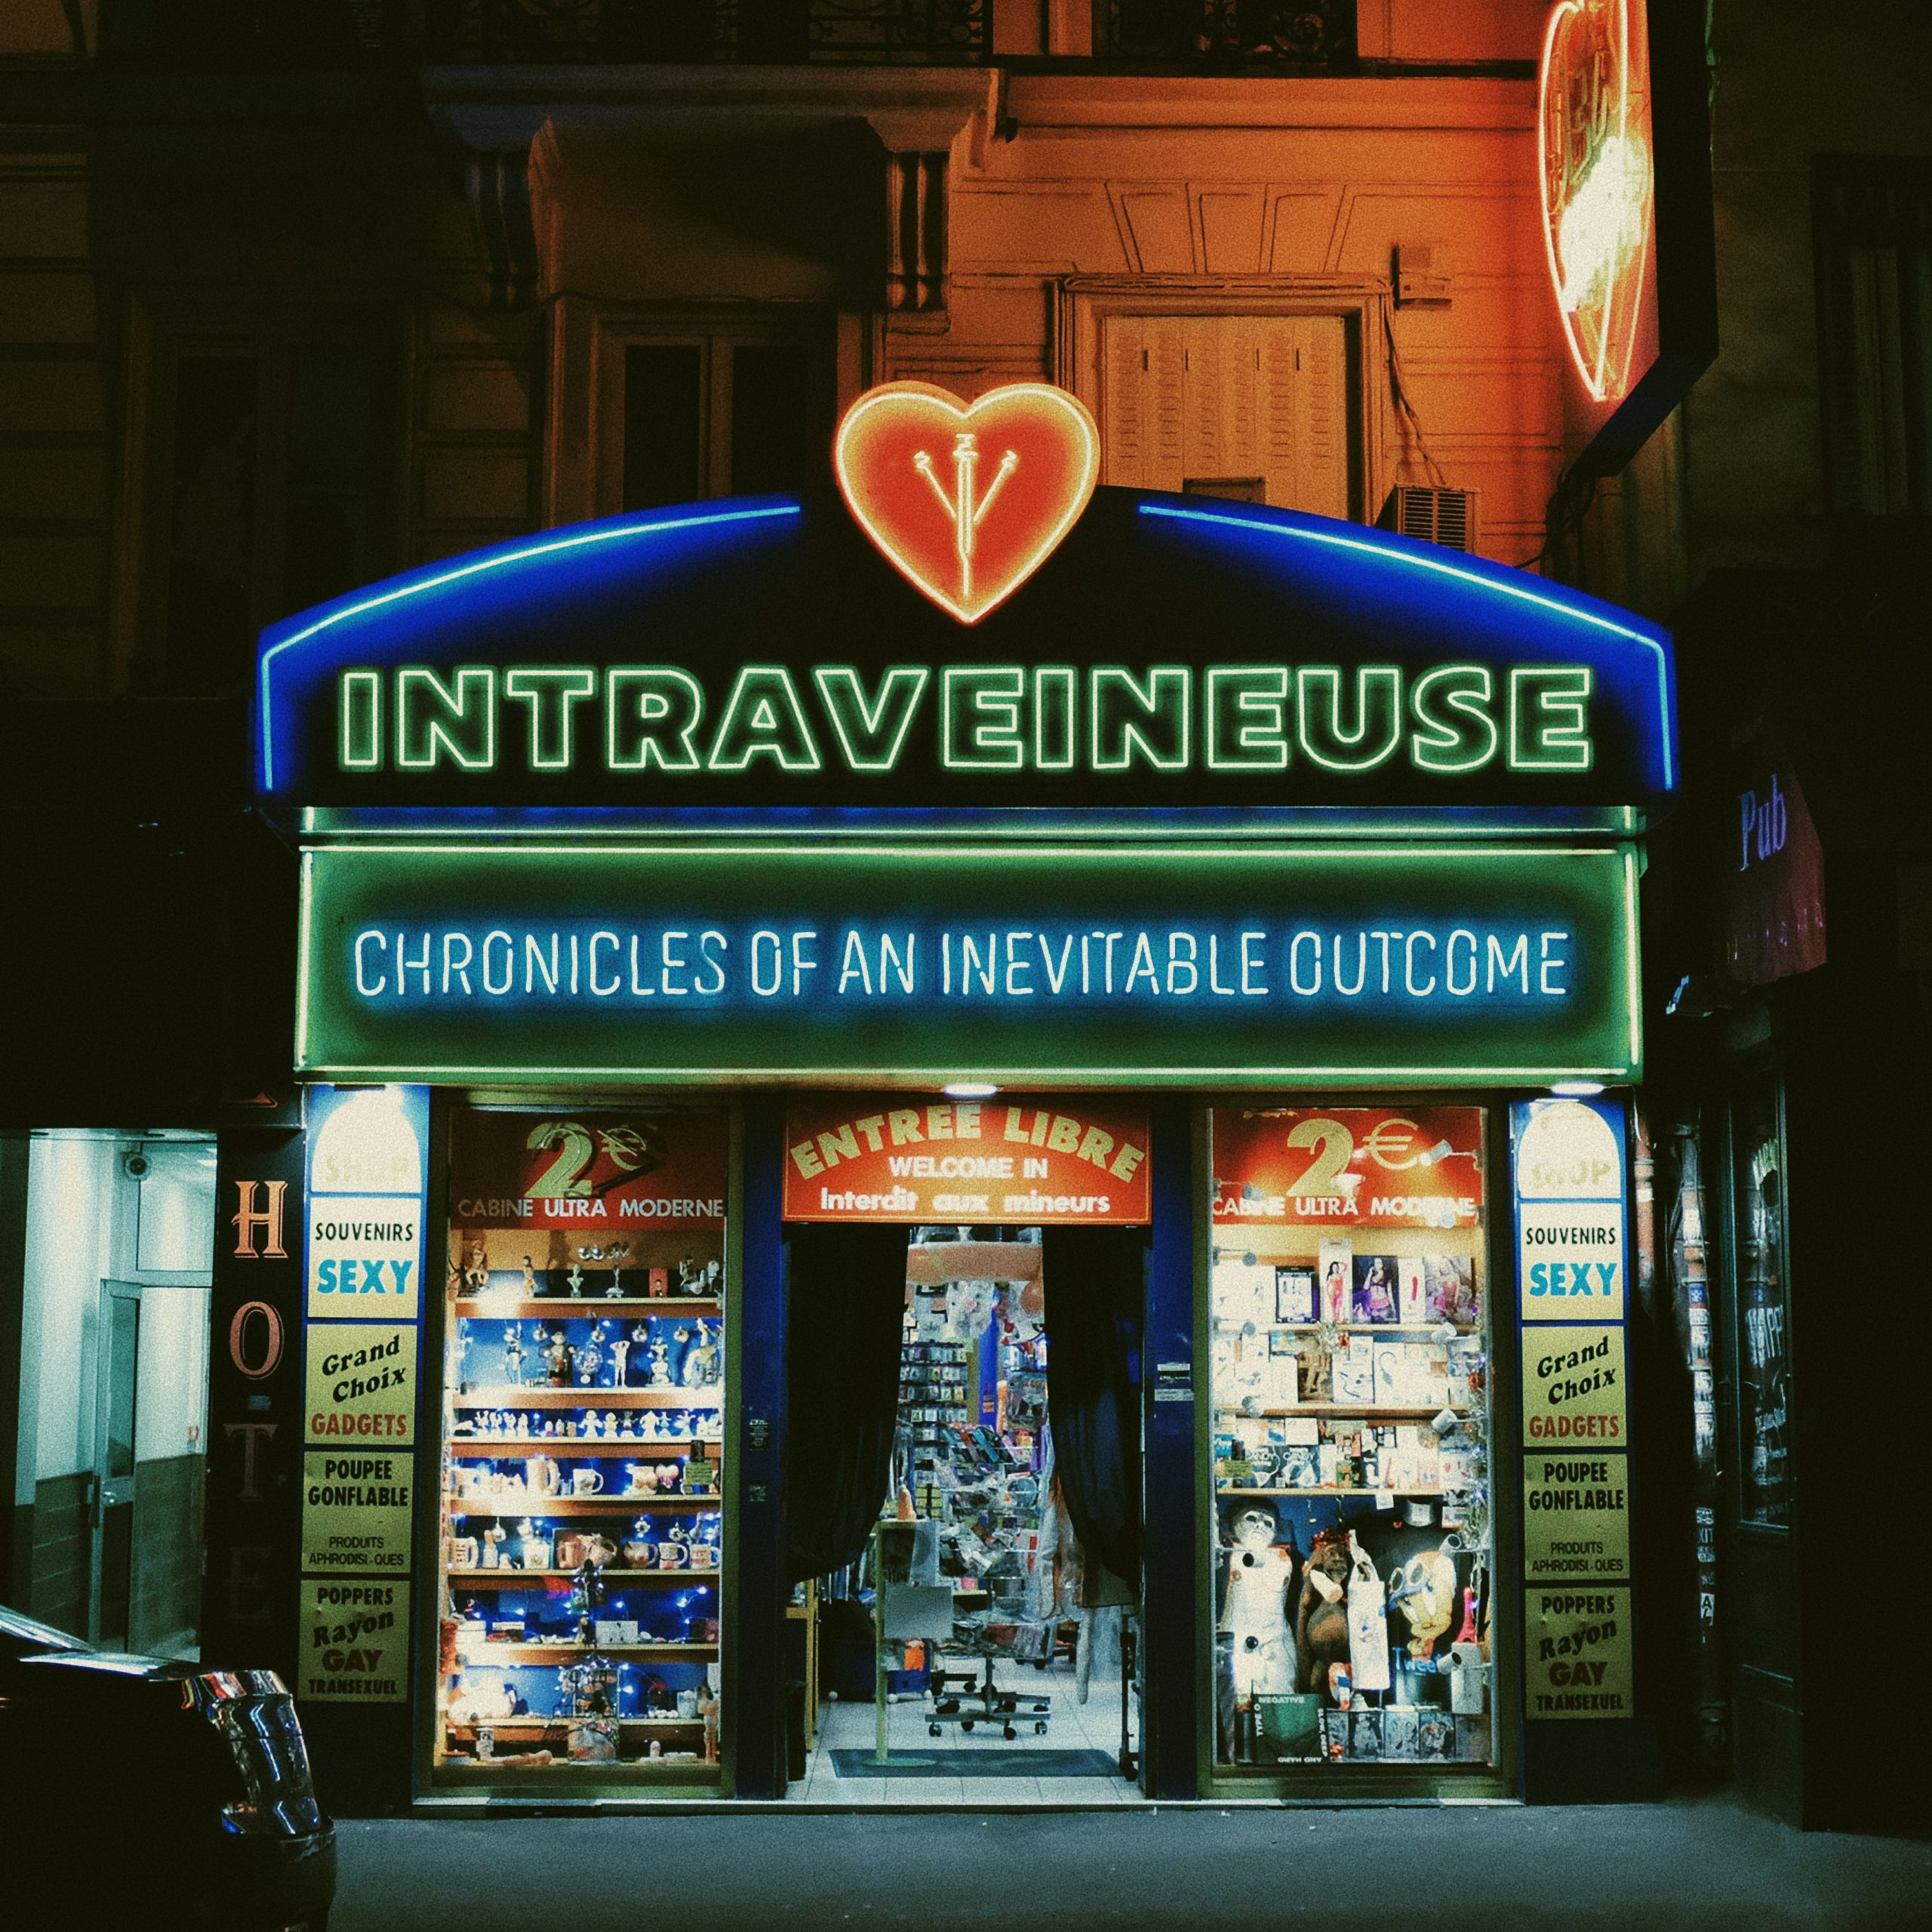 intraveineuse chronicles of an inevitable outcome